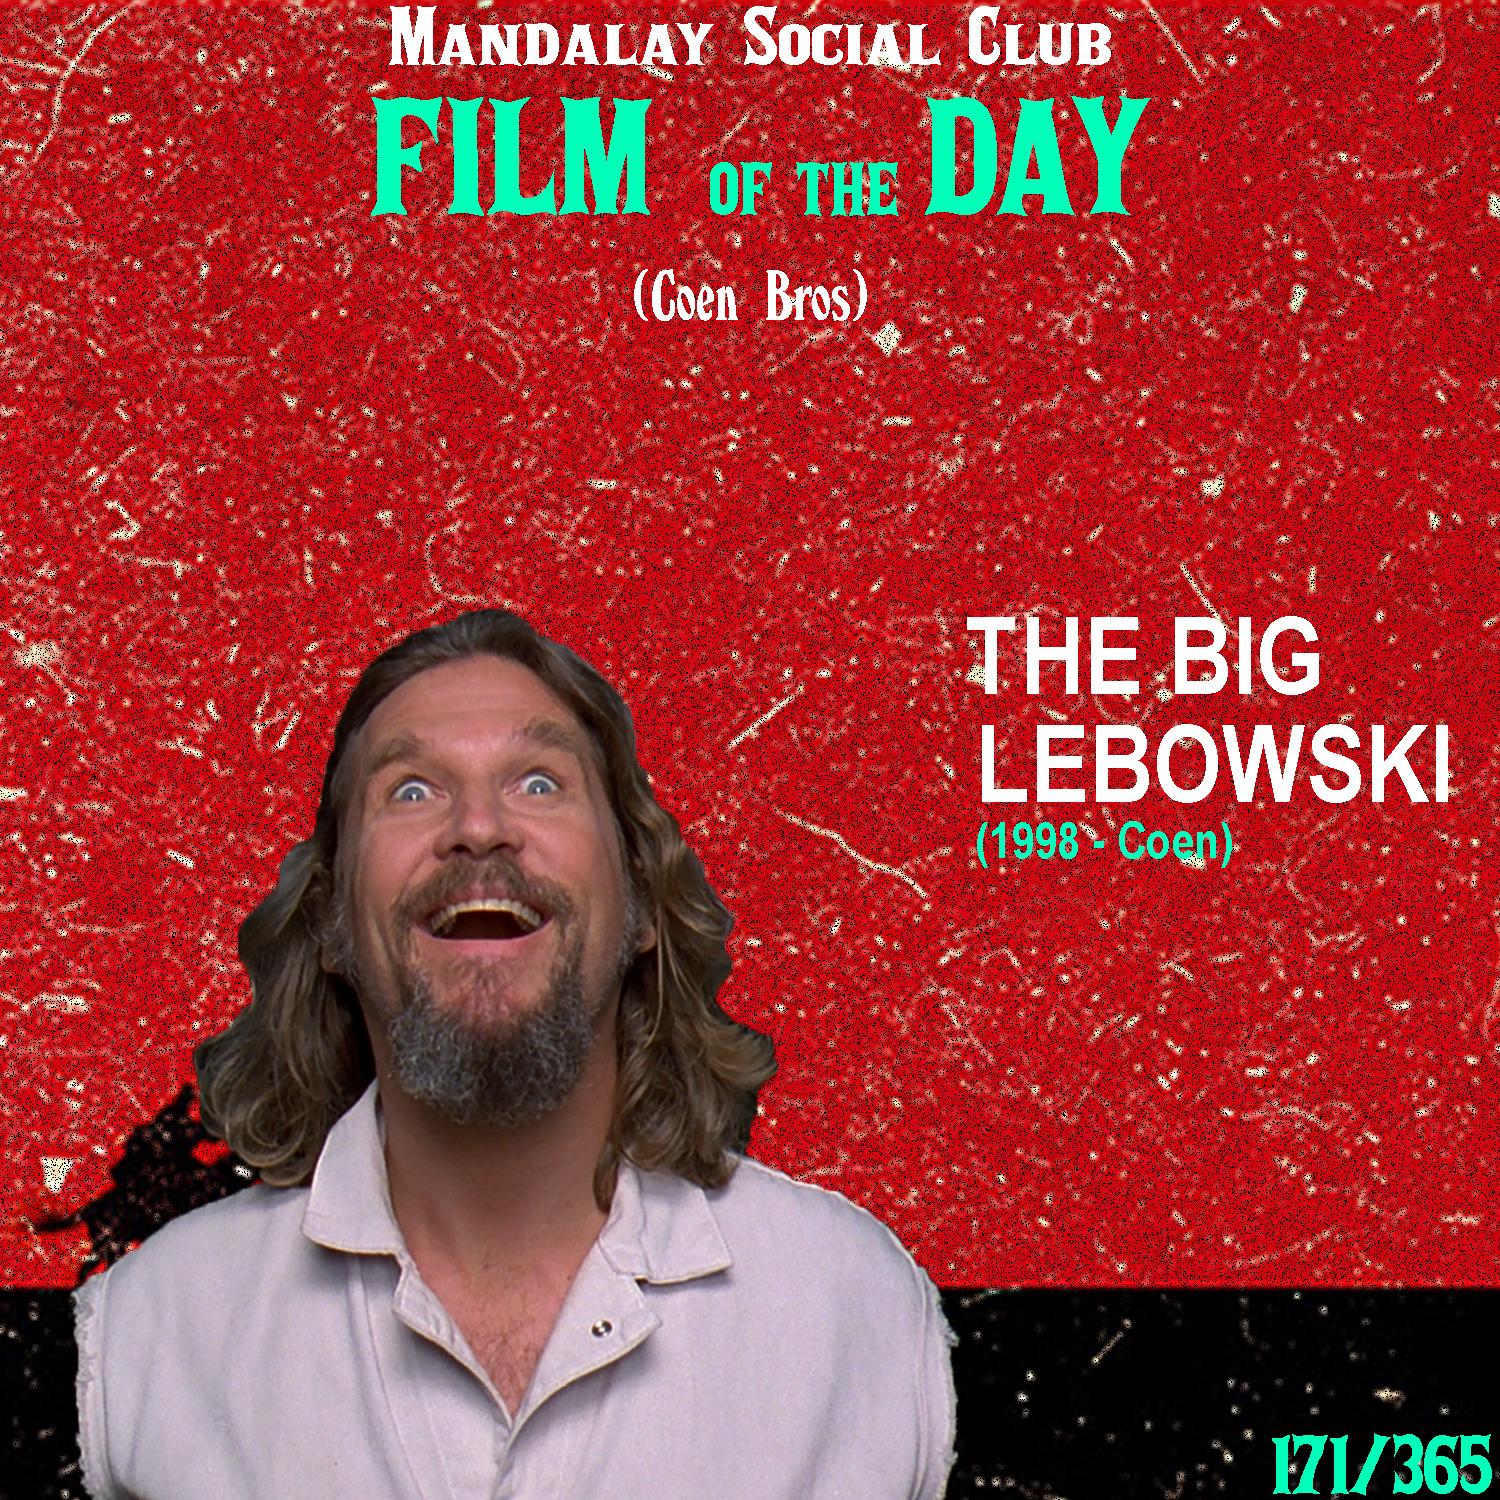 THE BIG LEBOWSKI     (dir. Coen Brothers)   The Coen's career had been in full effect for 14 years already, but  The Big Lebowski  launched the duo into the stratosphere.  Jeff Bridges stars as Jeff Lebowski, or 'The Dude', a pot-smoking, White Russian drinking slacker who spends his days getting high and bowling. One day, a couple of goons barge into The Dude's apartment and mistake him for a different Jeff Lebowski and end up pissing on his rug. Rightfully upset, The Dude finds the actual Jeff Lebowski and asks him to reimburse him for his soiled rug. After refusing to pay the Dude back, Lebowski's wife gets kidnapped by the goons who soiled The Dude's rug and is being held for a million dollar ransom. Now, The Dude must go deliver the ransom and collect Lebowski's wife back.   The Big Lebowski  is the Coen's most praised, stylized, and popular film by far and for good reason.  The Big Lebowski  shows the Coen's at their peak in terms of comedic effect and they intertwine this goofy stoner comedy in the mix with a Raymond Chandler-esque mystery that plays out almost like  The Long Goodbye  if the Coen's got in the director's chair for it.    5/5     WATCH: Putlocker (FREE), iTunes (RENT)